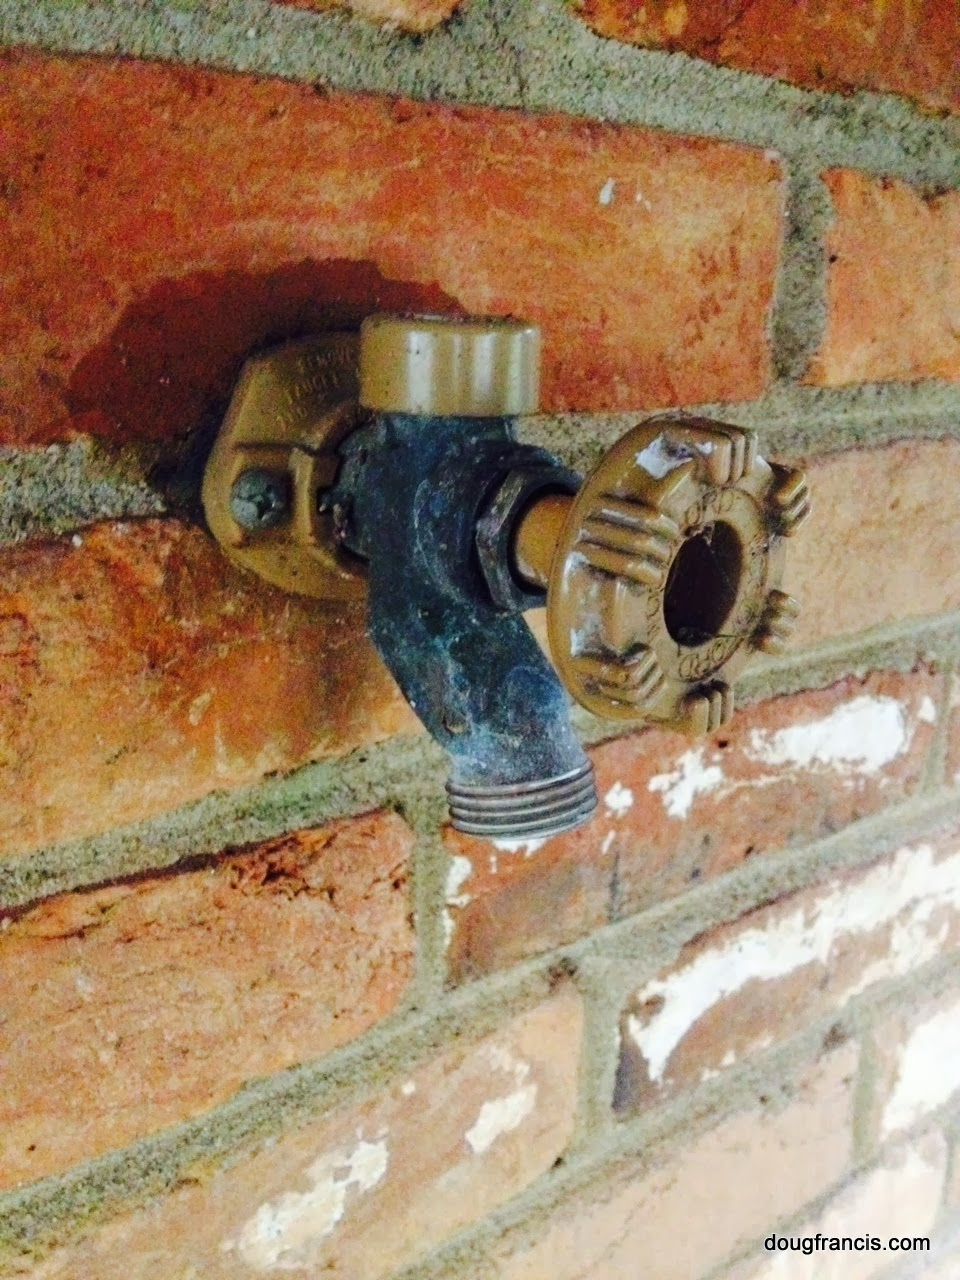 Remarkable House Shutting Off Outside Water Before Polar Vortex Hits Vienna Virginia Outside Water Faucet Walmart Outside Water Faucet Lock Winter Water Spigot Side houzz-03 Outside Water Faucet